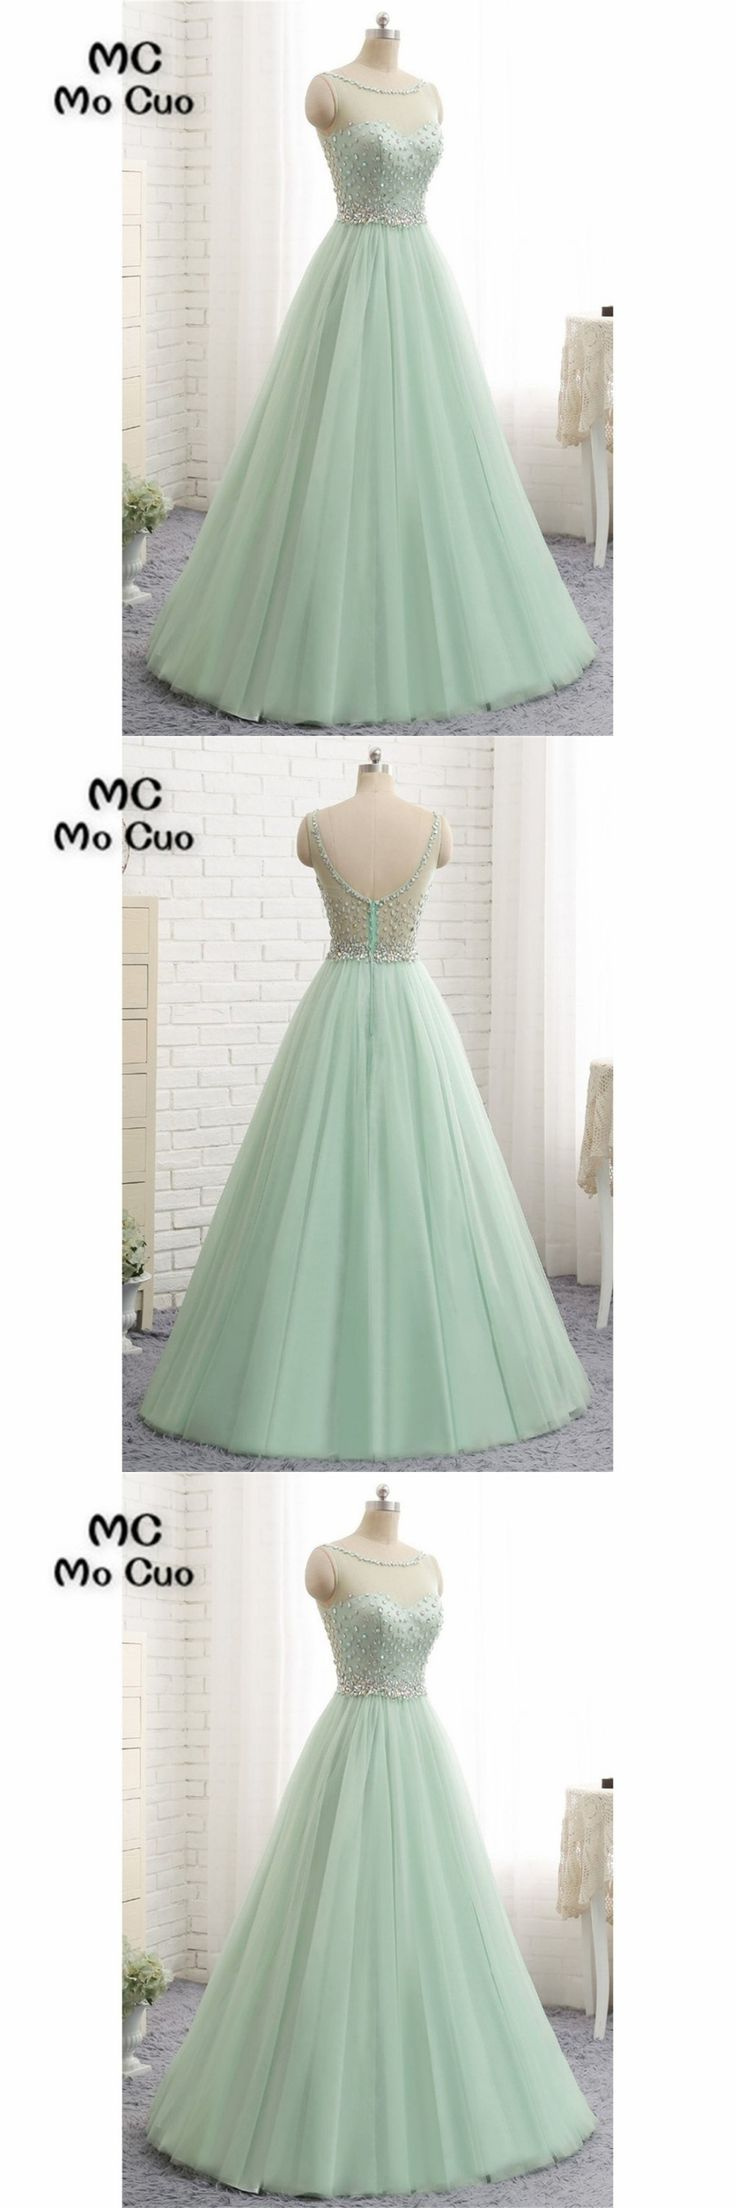 Illusion Prom dresses Long with Crystals Beaded Sweep Train Tulle Backless dress for graduation Formal Evening Prom Dress